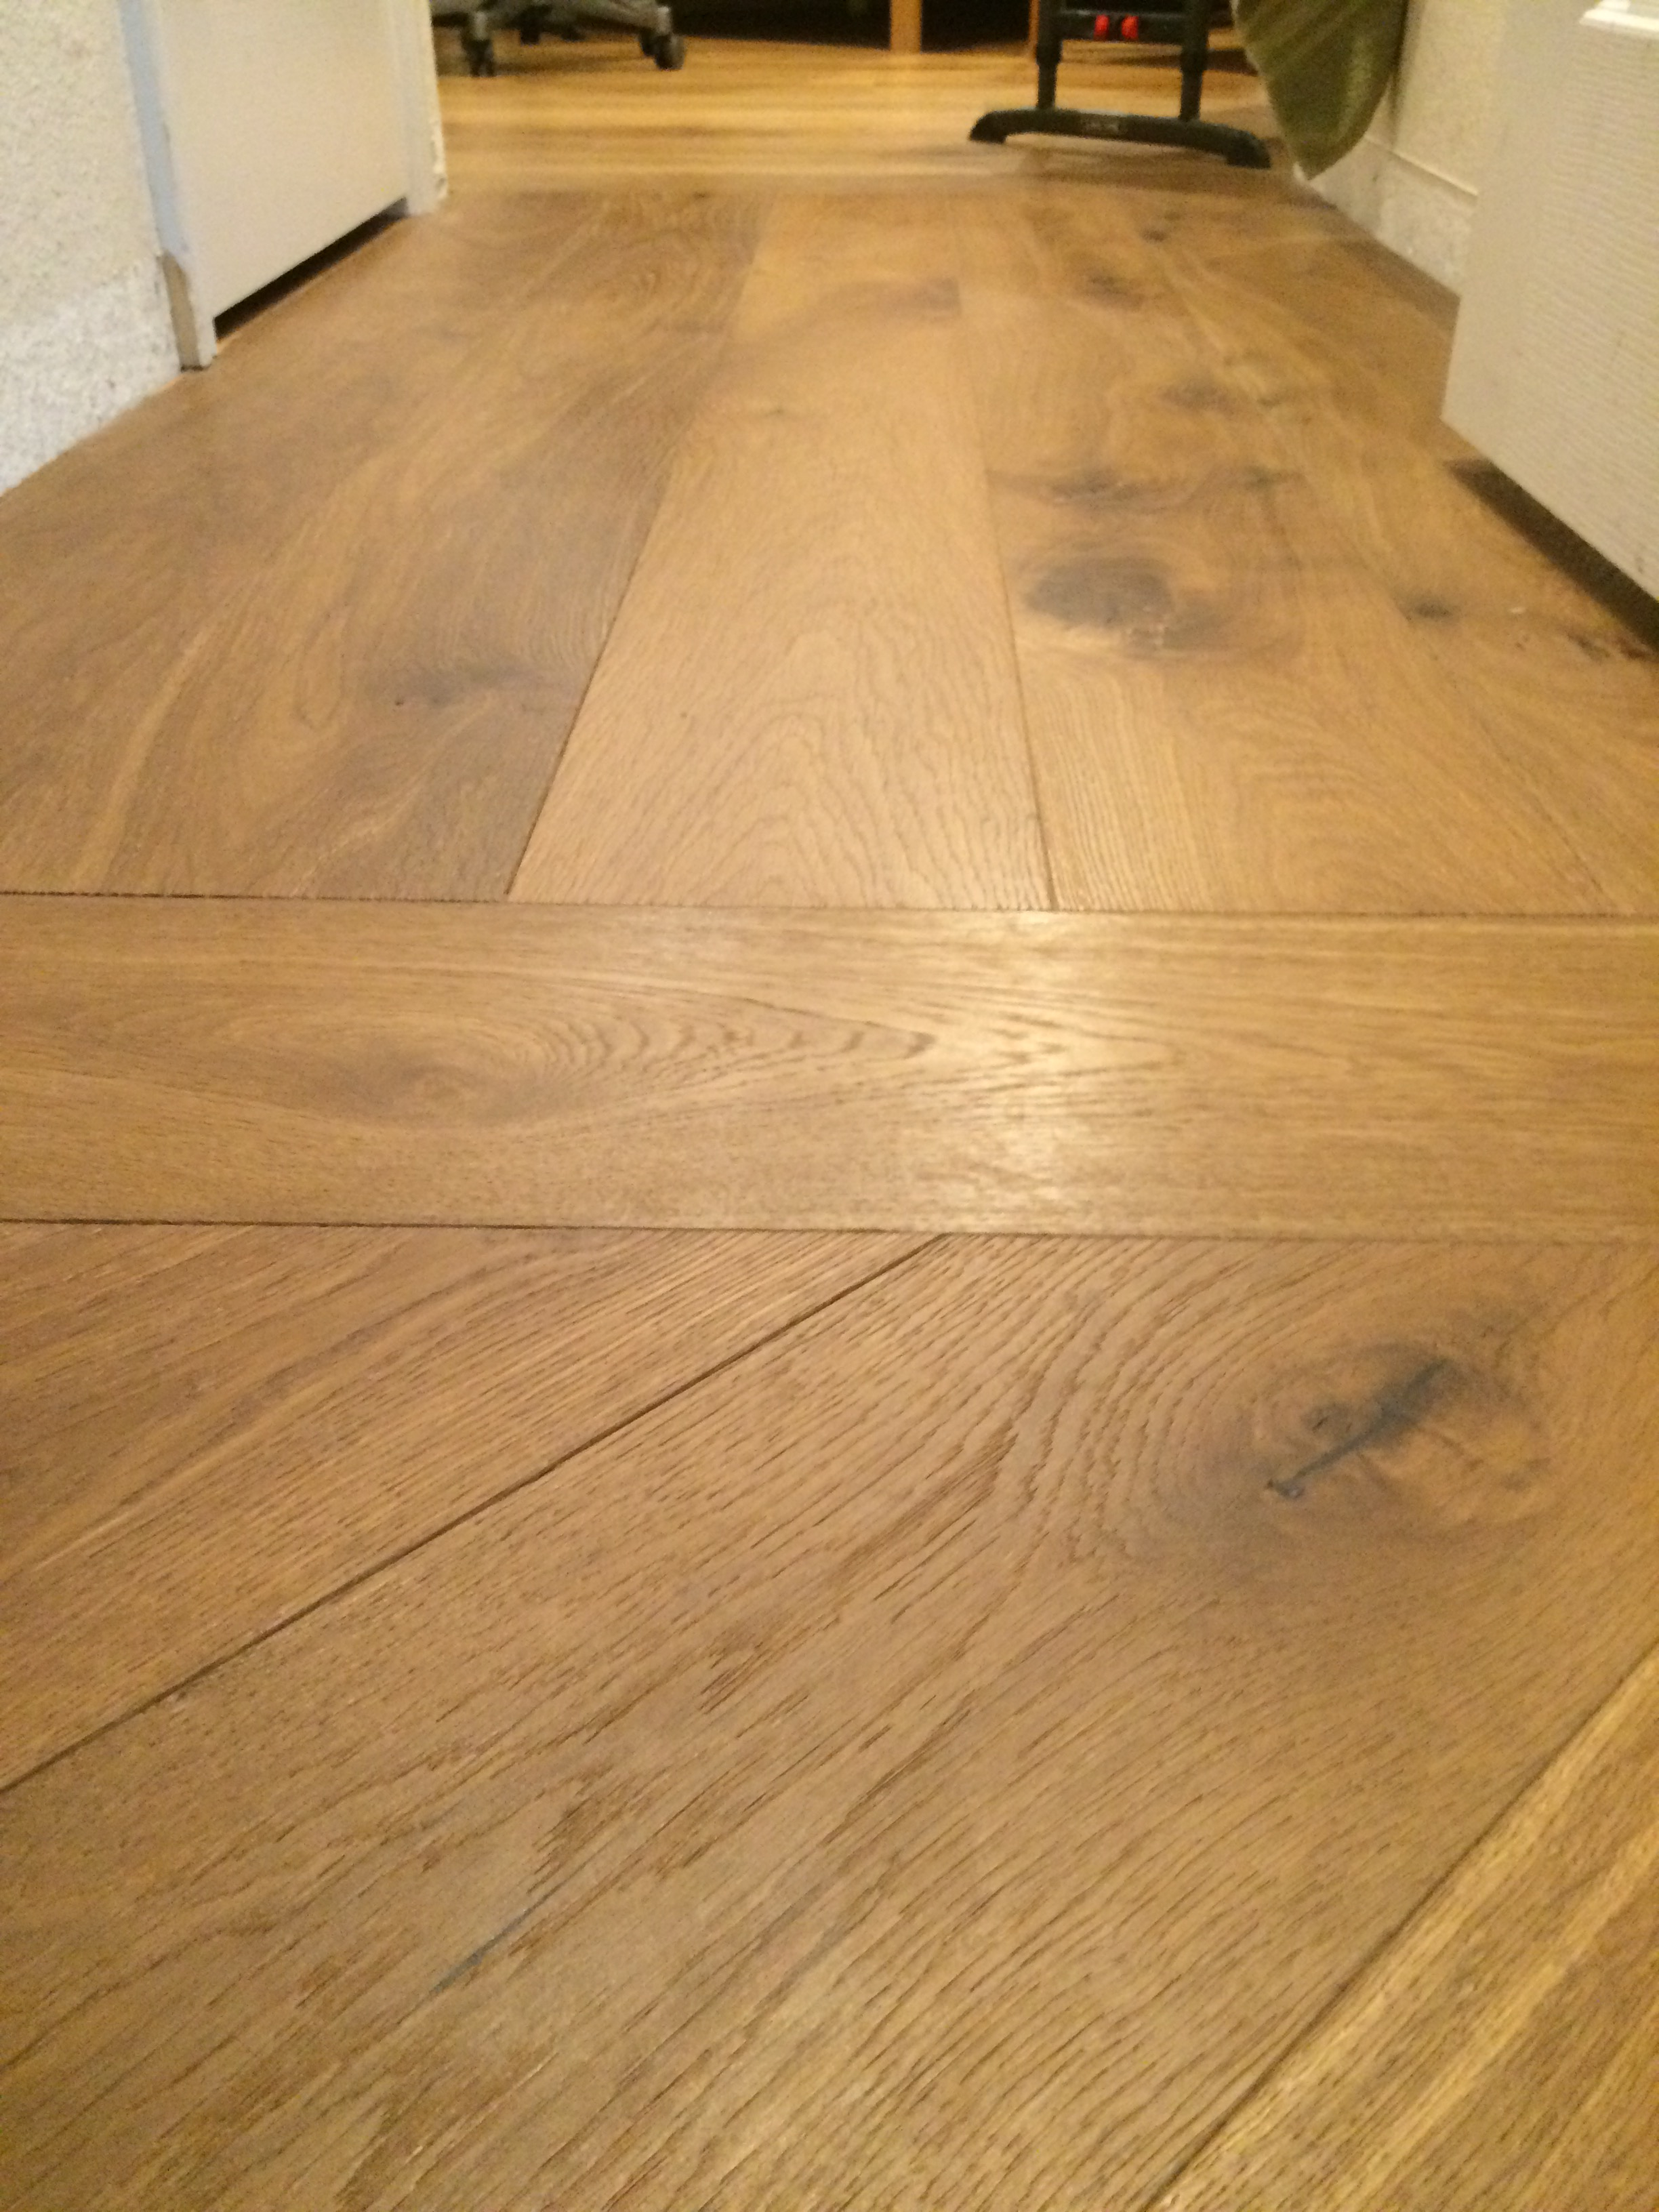 Diablo flooring inc hallmark hardwood clayton ca for Hardwood flooring inc